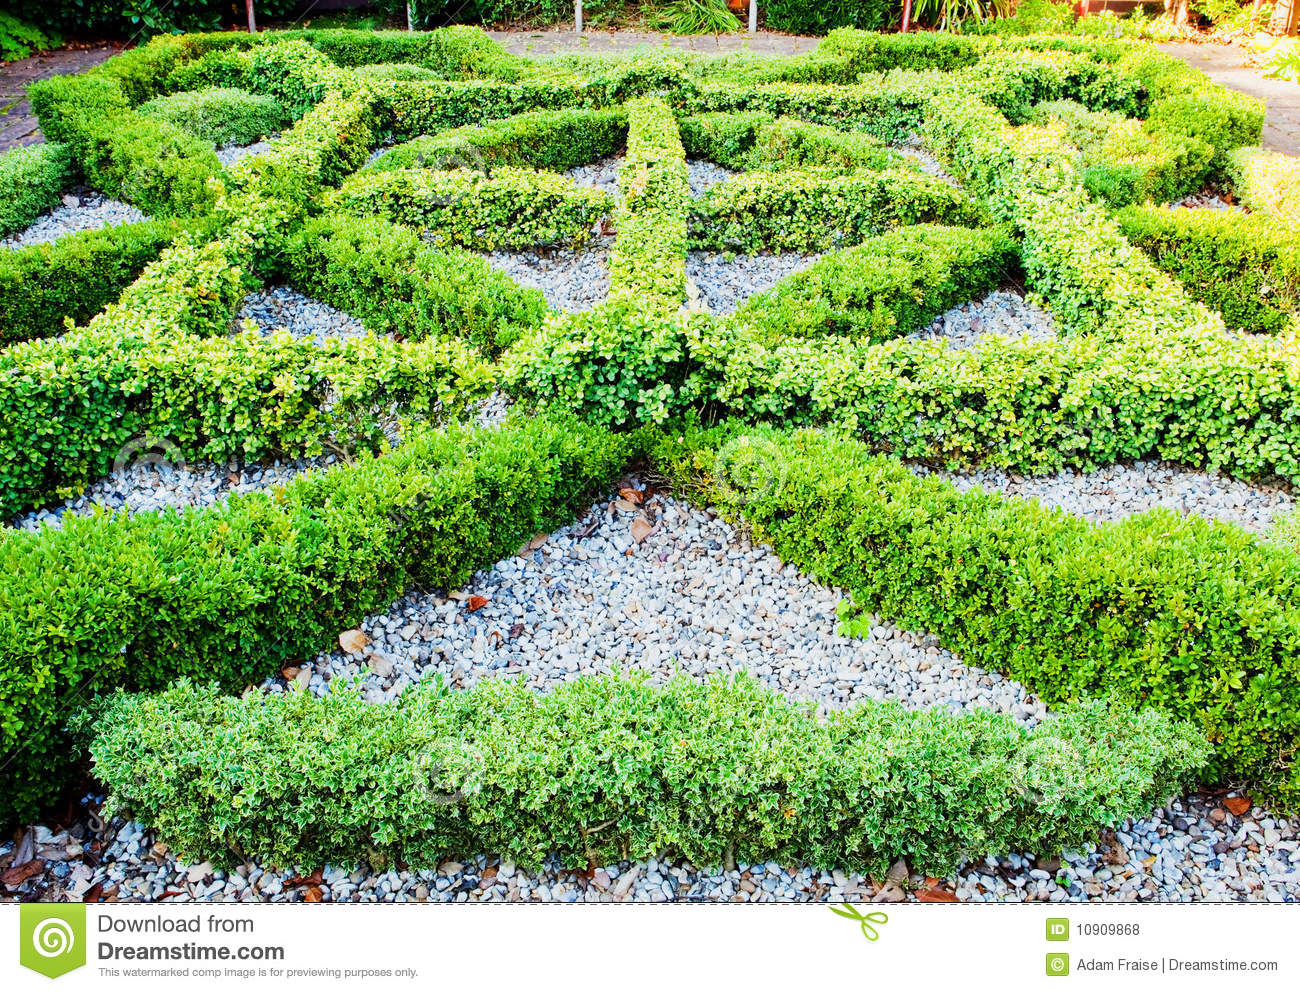 Knot garden royalty free stock photos image 10909868 for Tudor knot garden designs